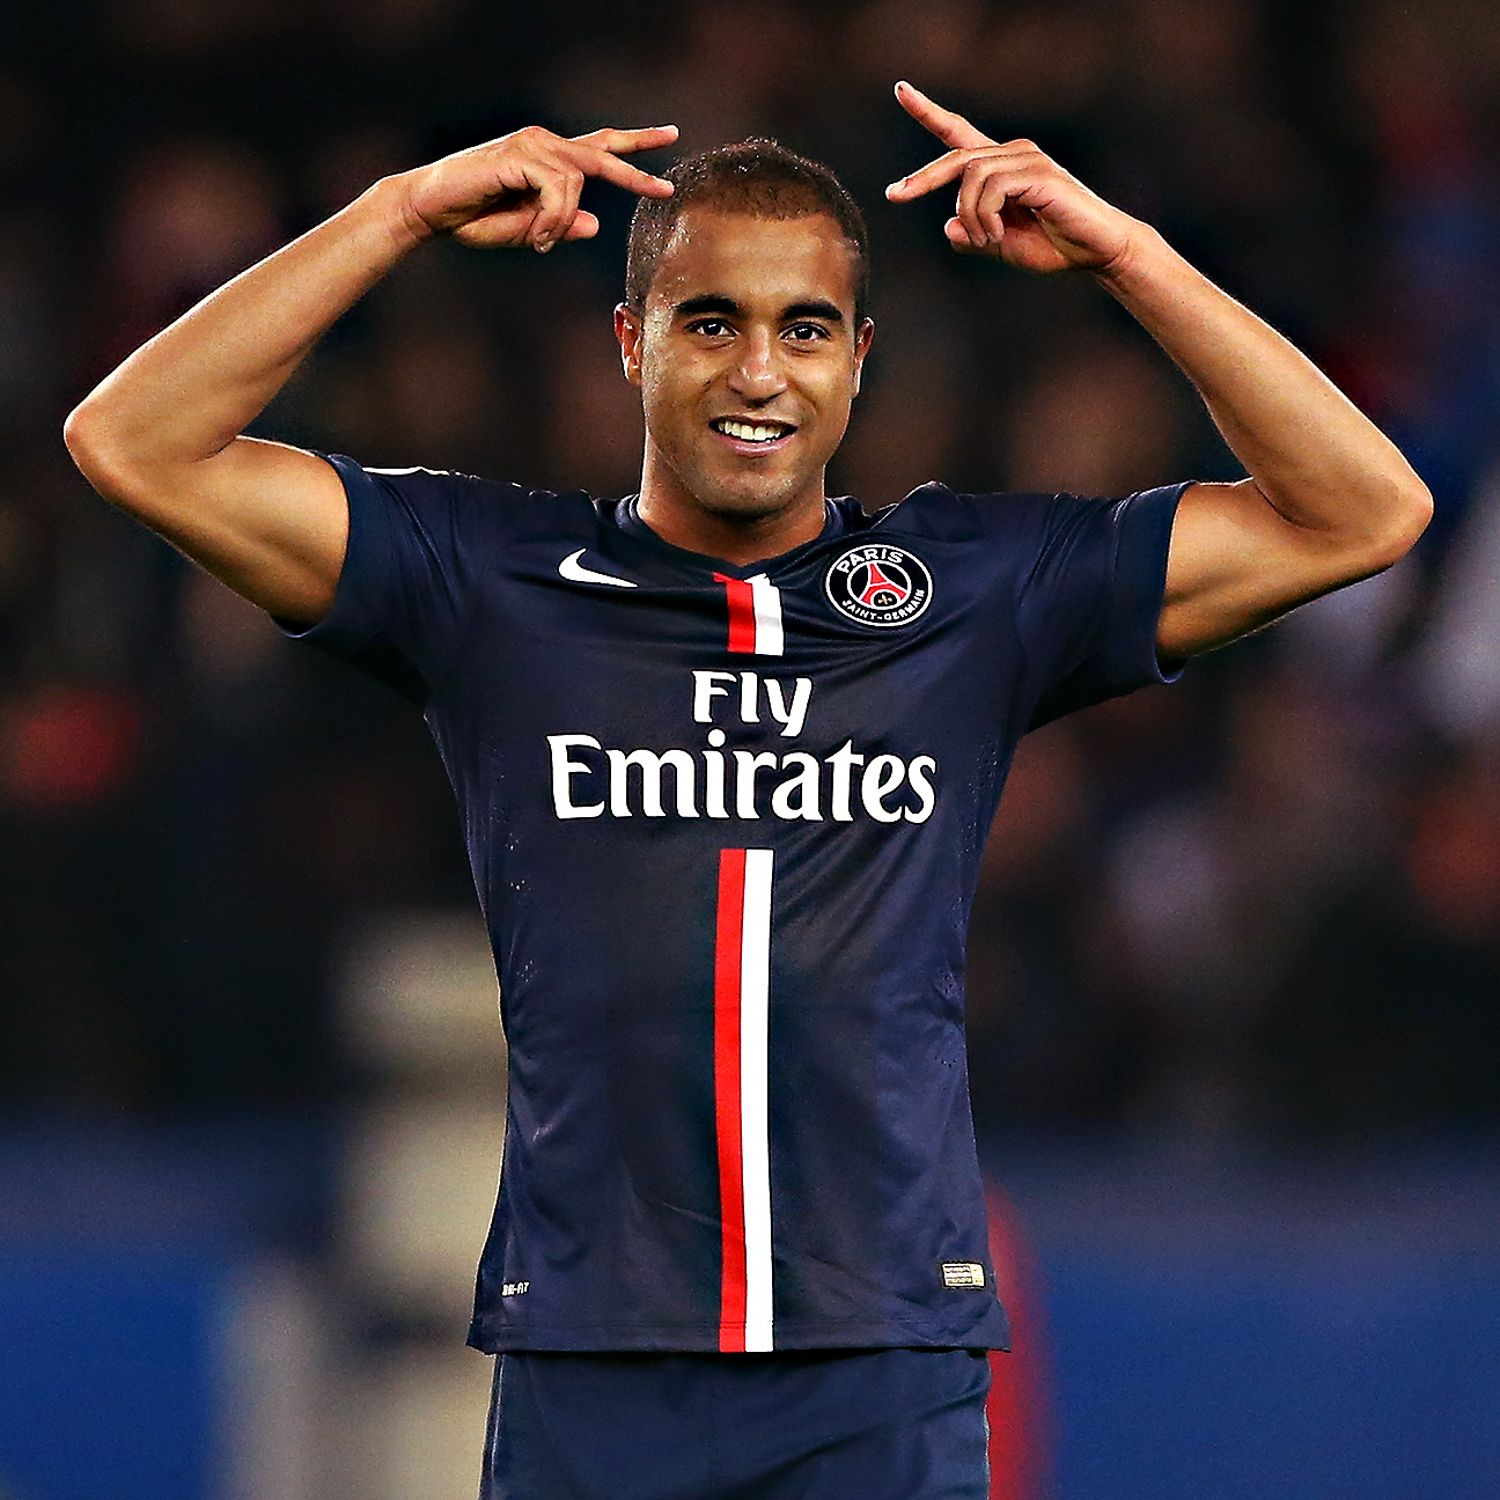 Lucas Silva: Lucas Moura To Miss PSG's Next Six Matches At Least After